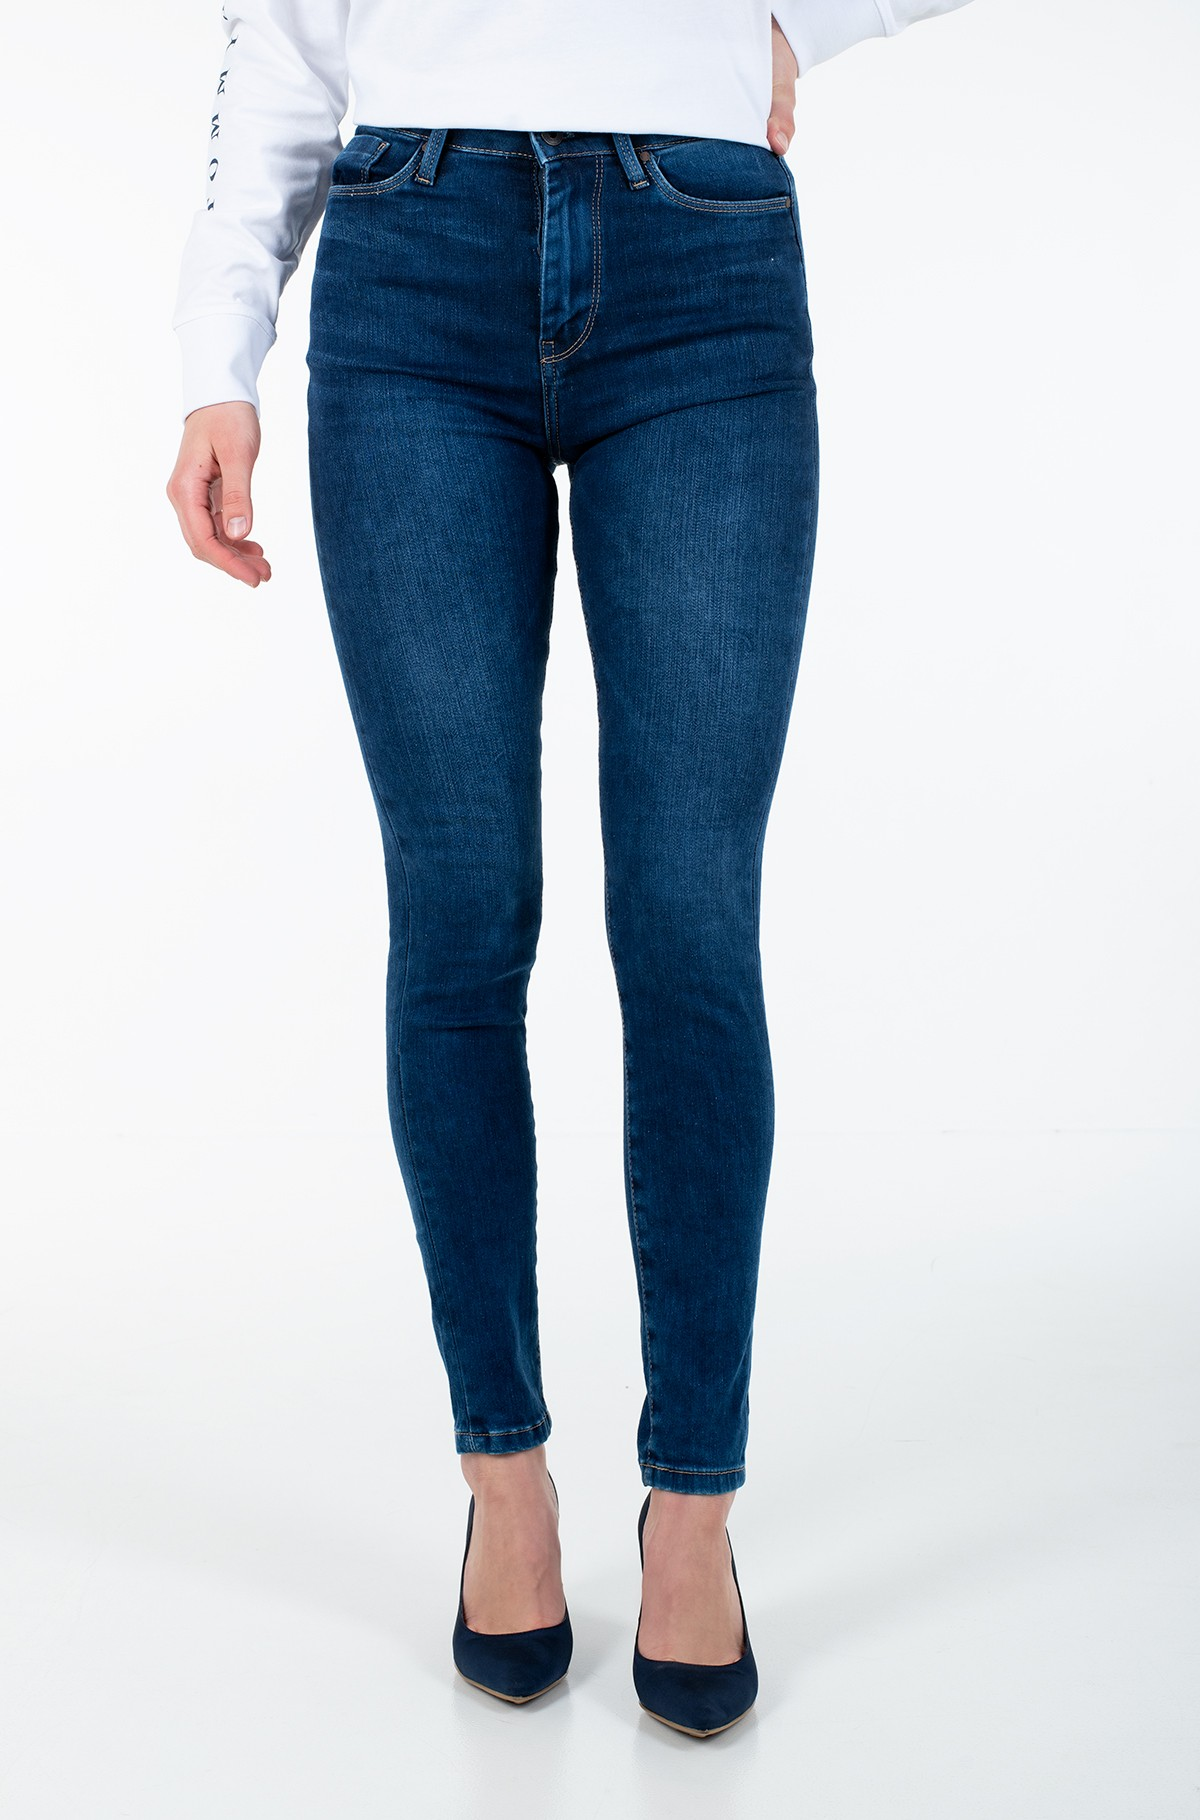 Jeans DION/PL202285DD6-full-1